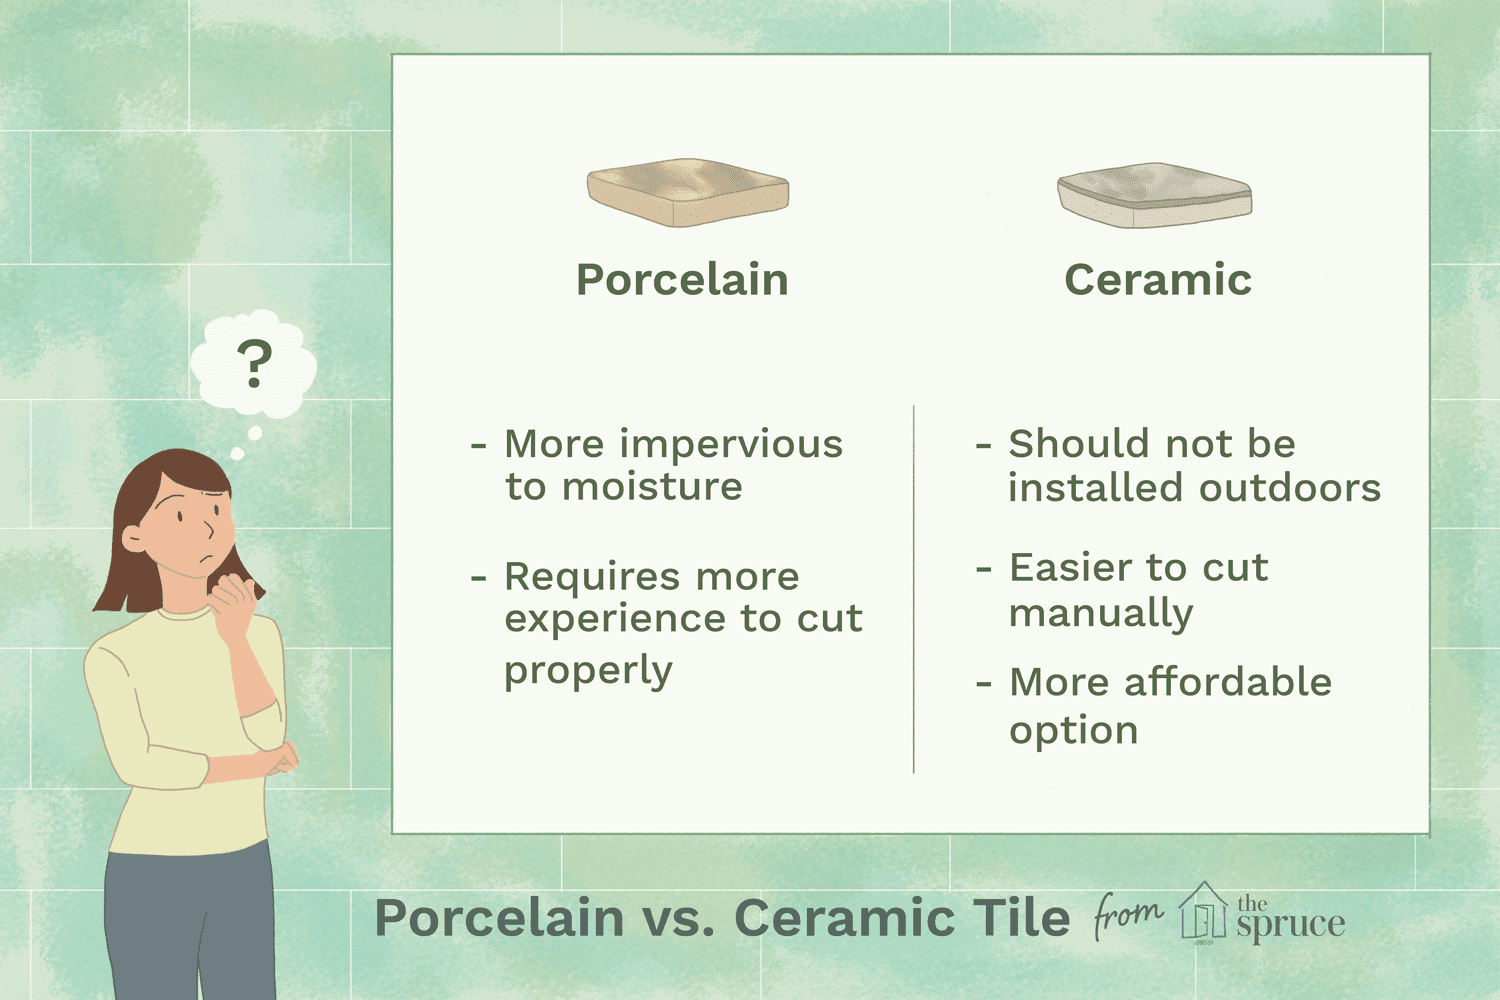 Porcelain vs. Ceramic Tile - How Are They Different?